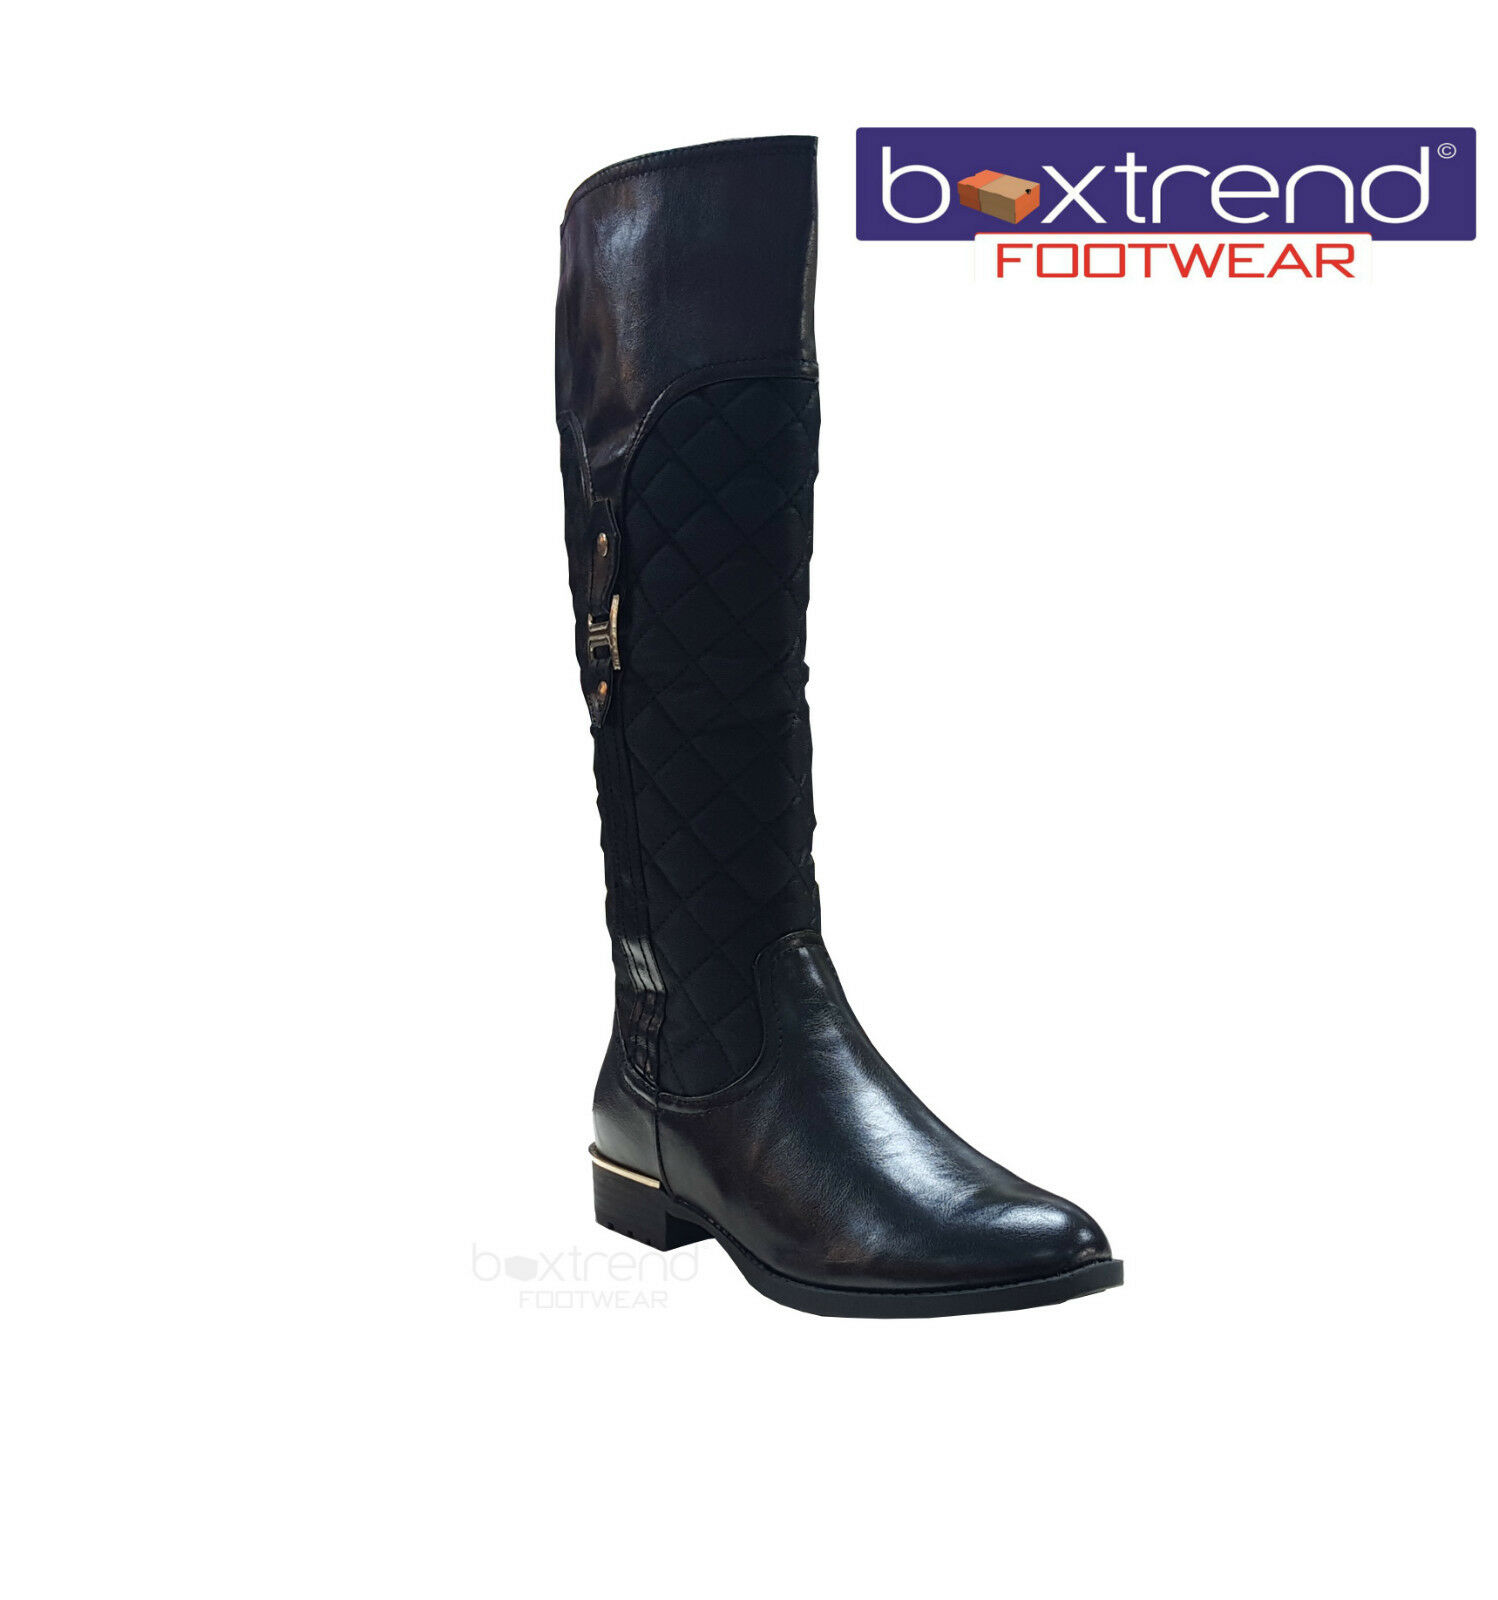 WOMENS LADIES KNEE HIGH QUILTED ZIP UP LOW HEEL WINTER BOOTS SHOES RIDING BLACK